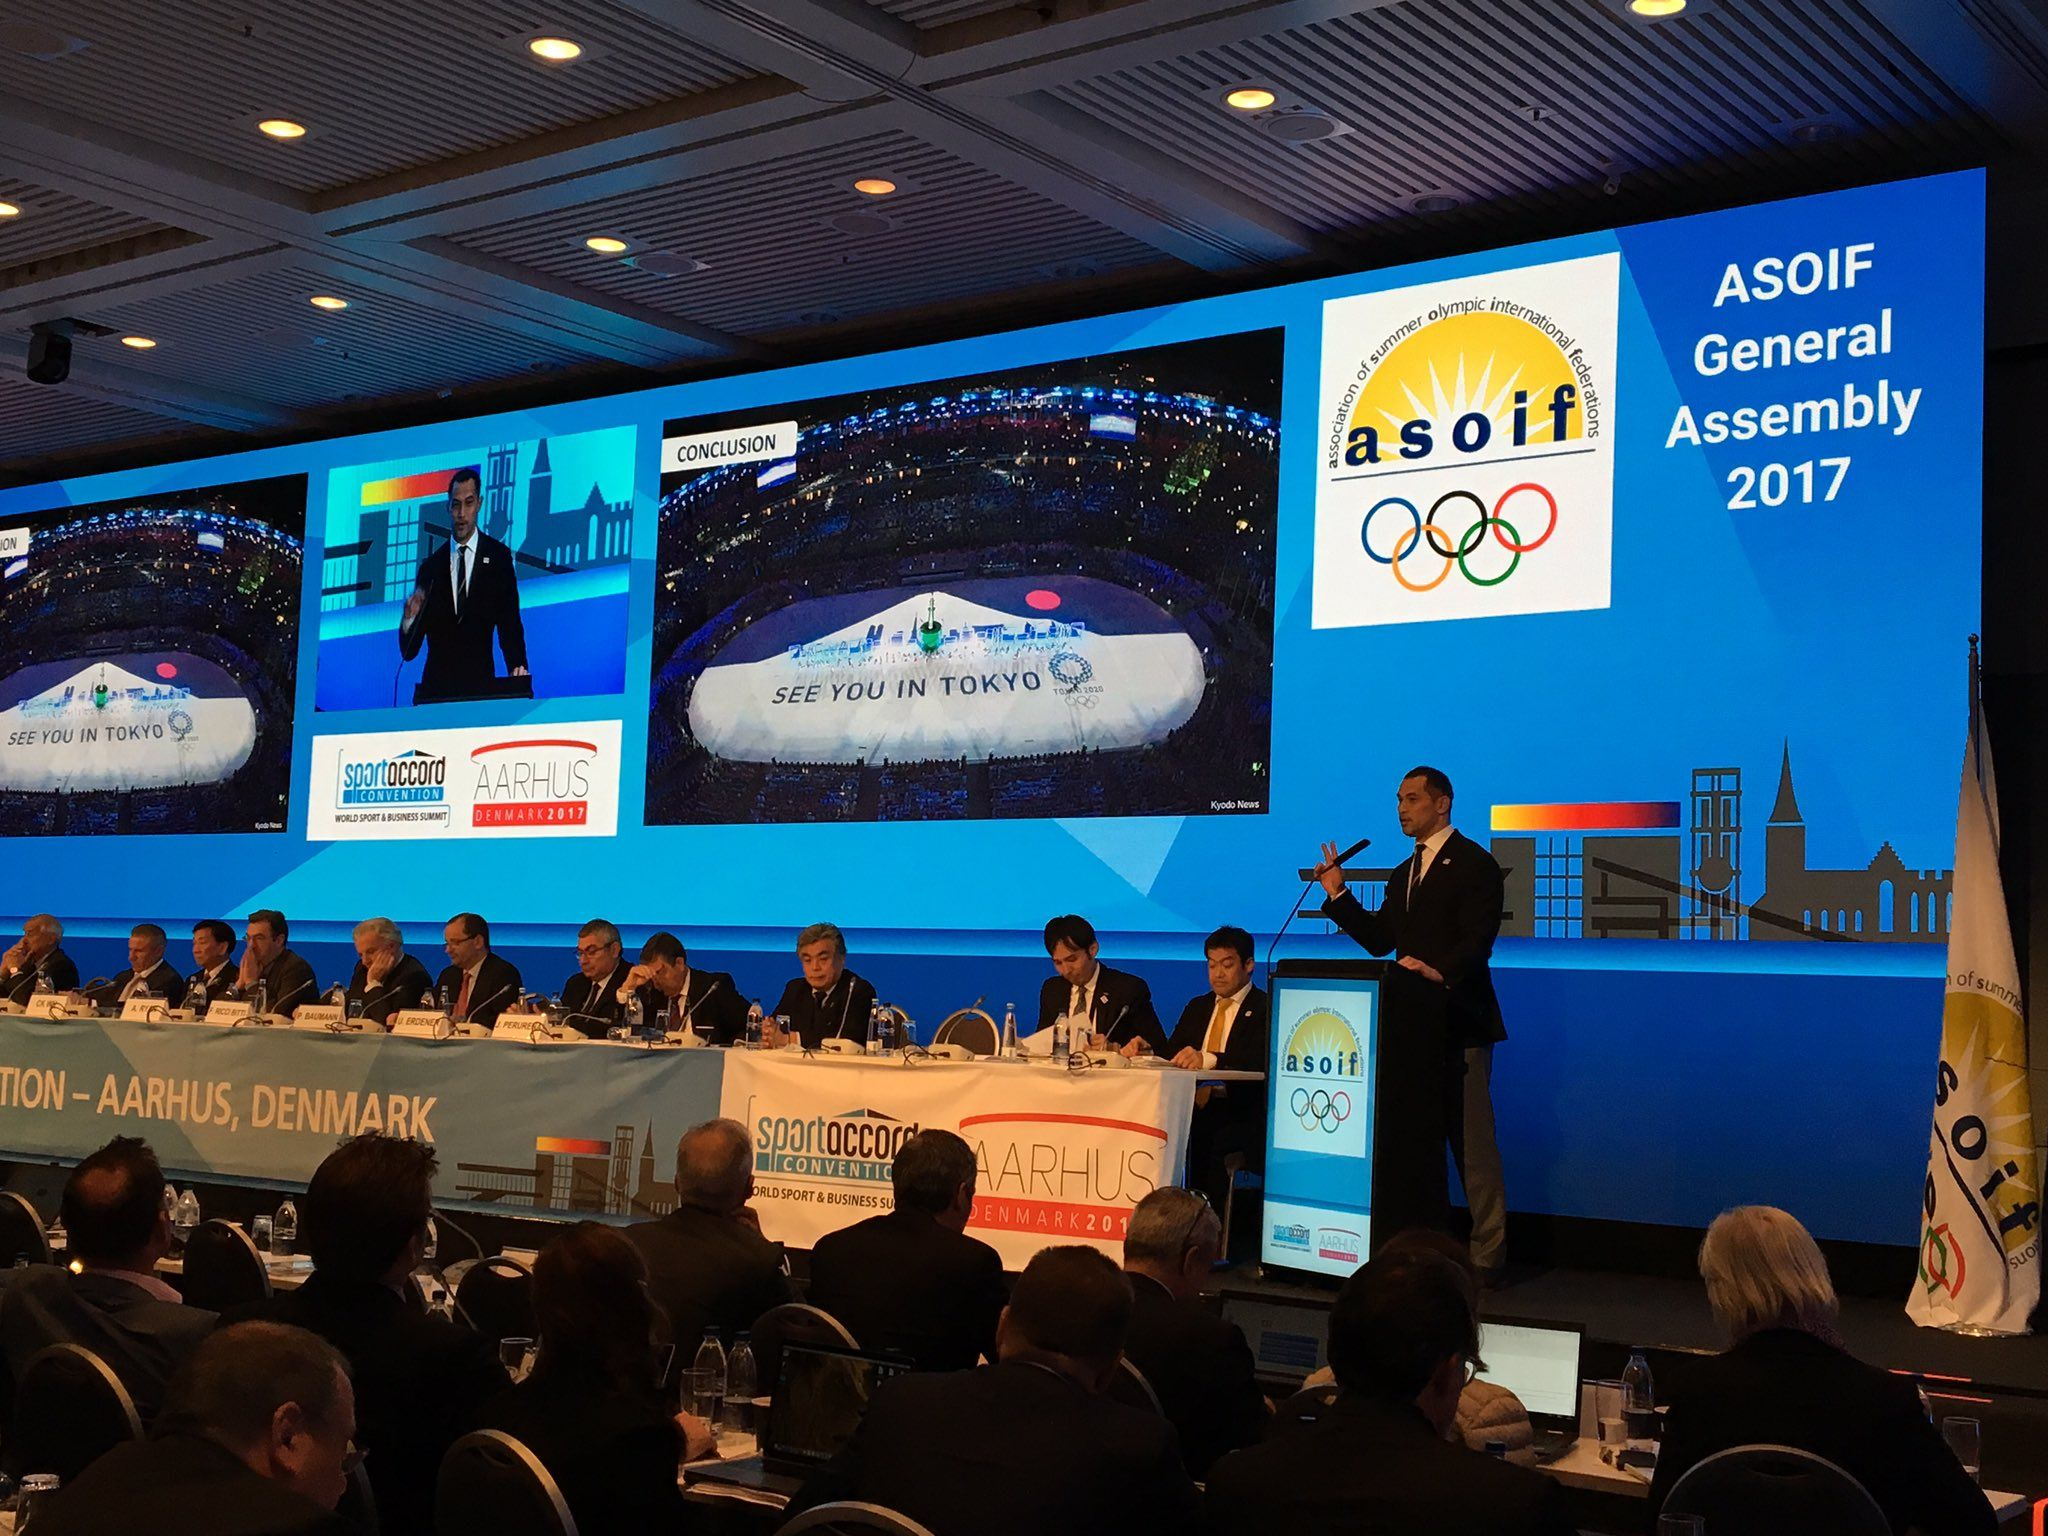 RT @ASOIFSummerIFs: Tokyo 2020 now updating the ASOIF General Assembly about their preparations and collaboration with IFs https://t.co/0MnTsUabax